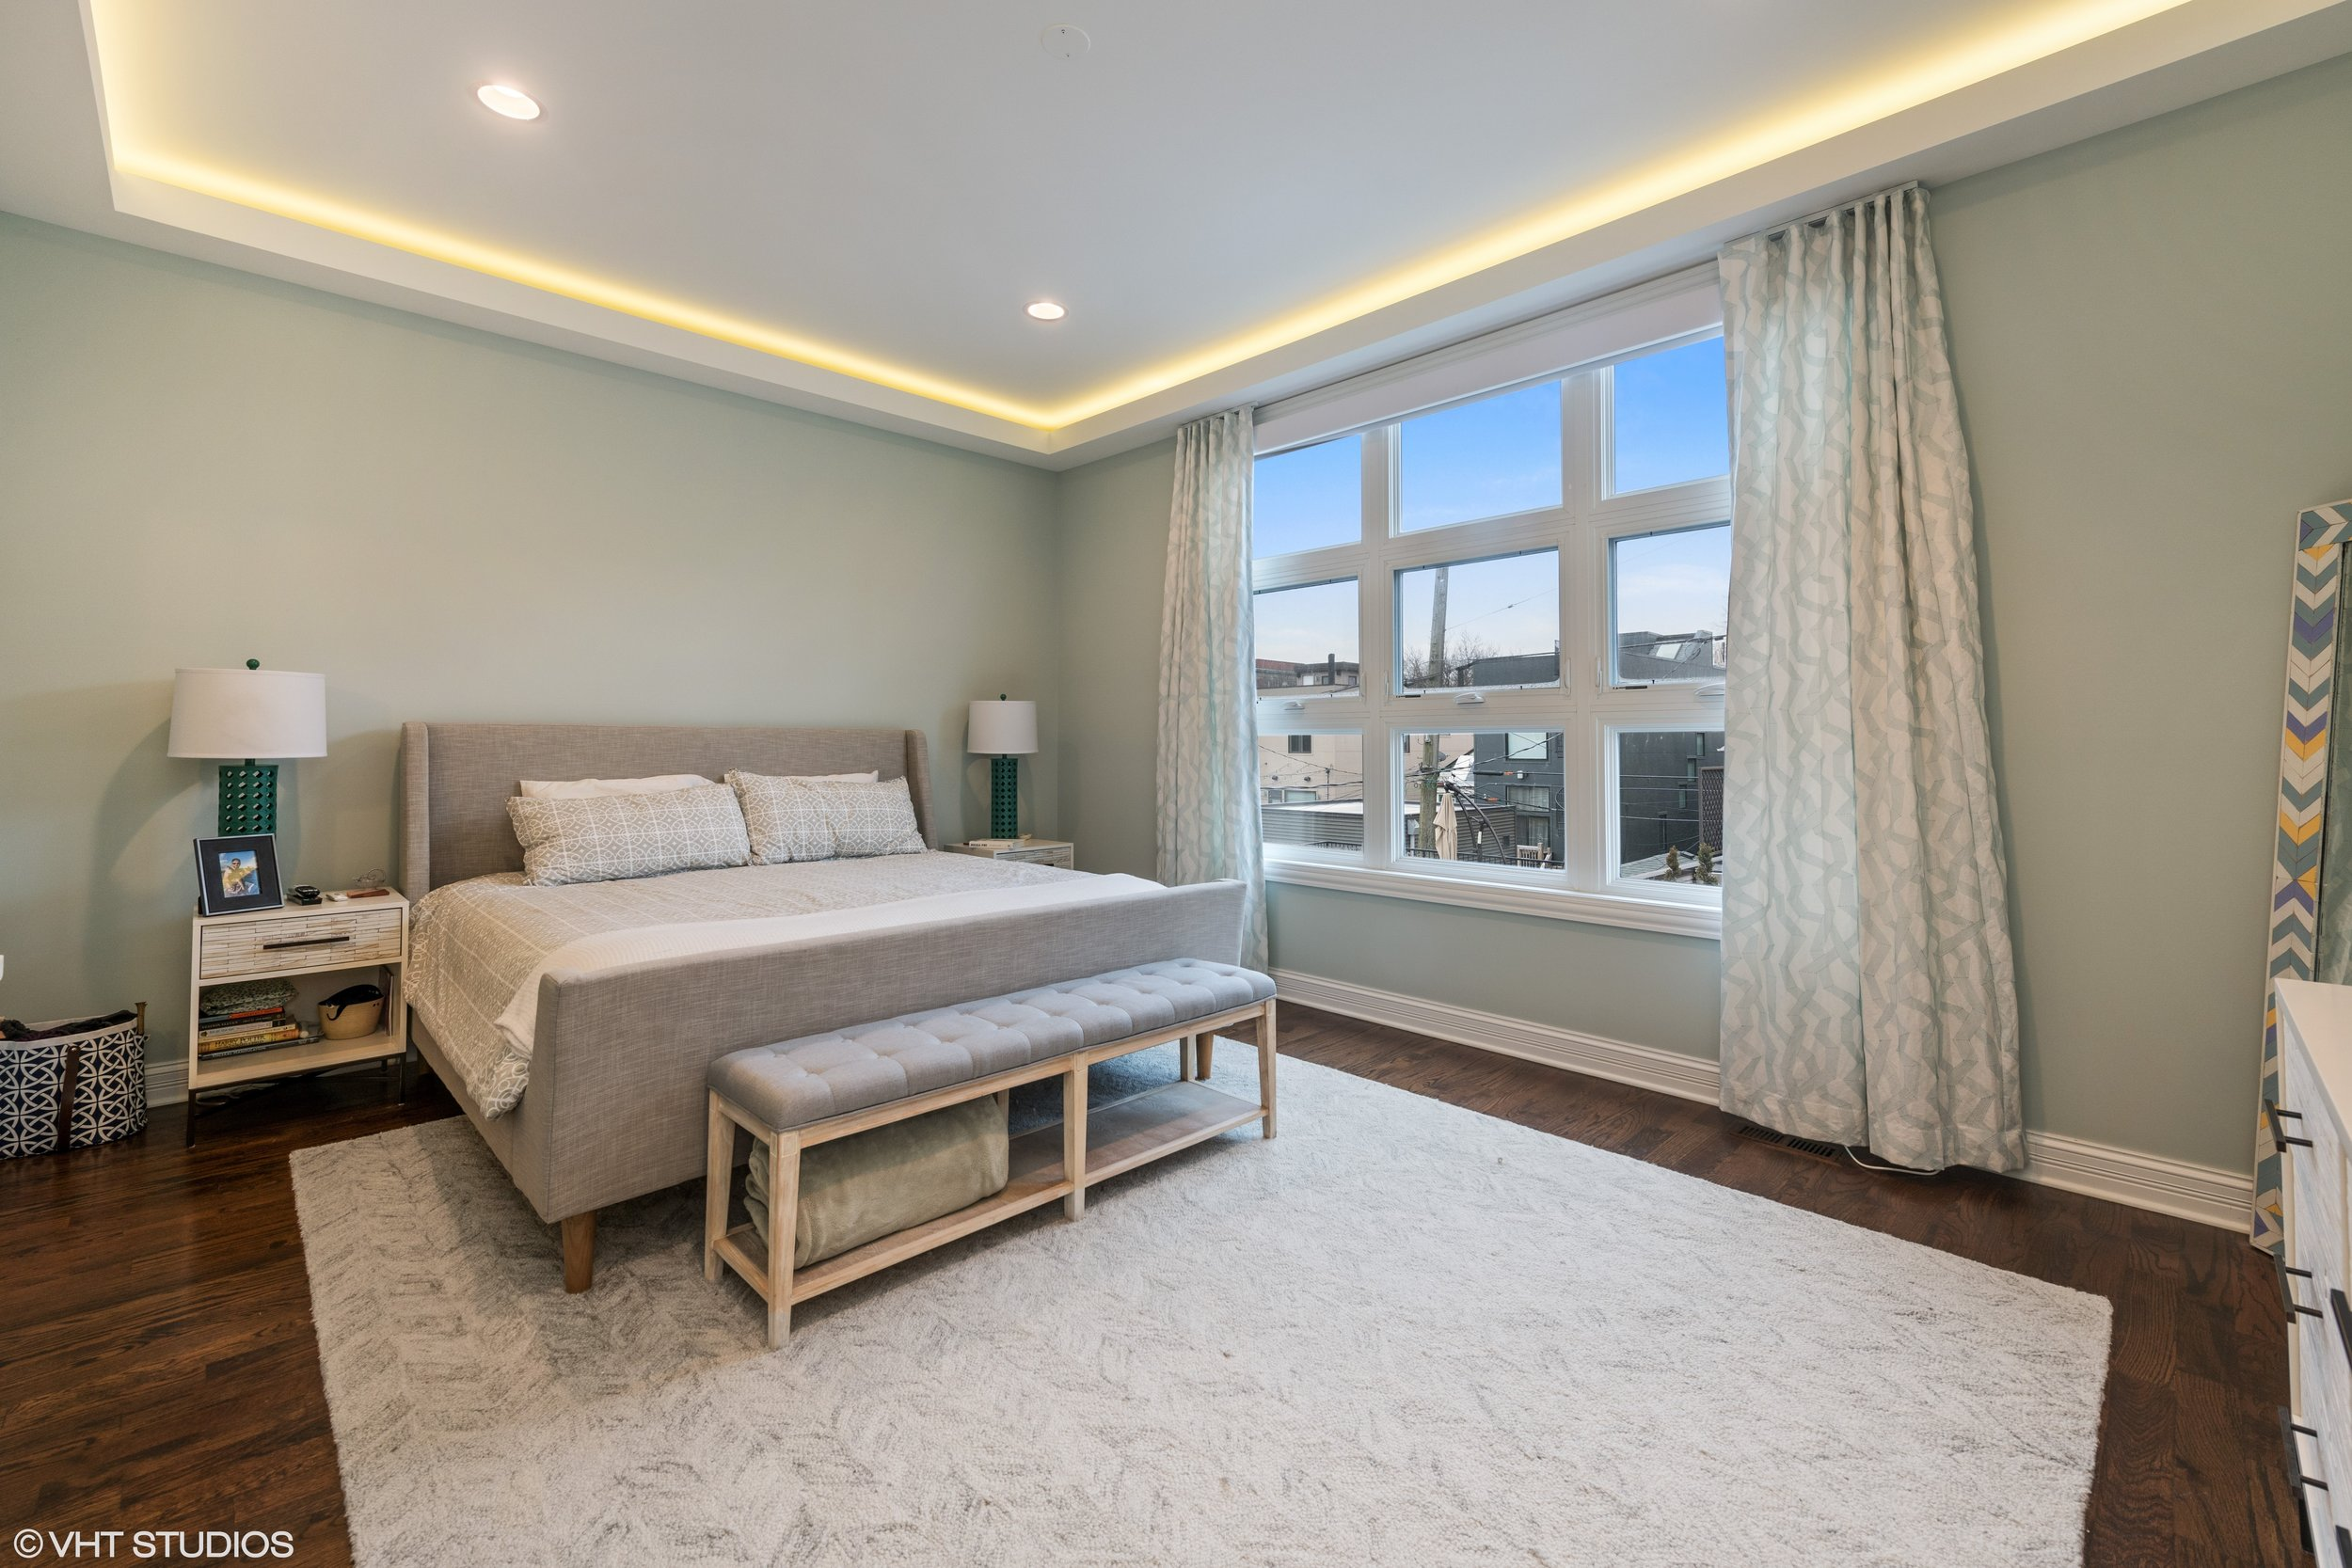 17_2639WMedillAve_14_MasterBedroom_HiRes.jpg